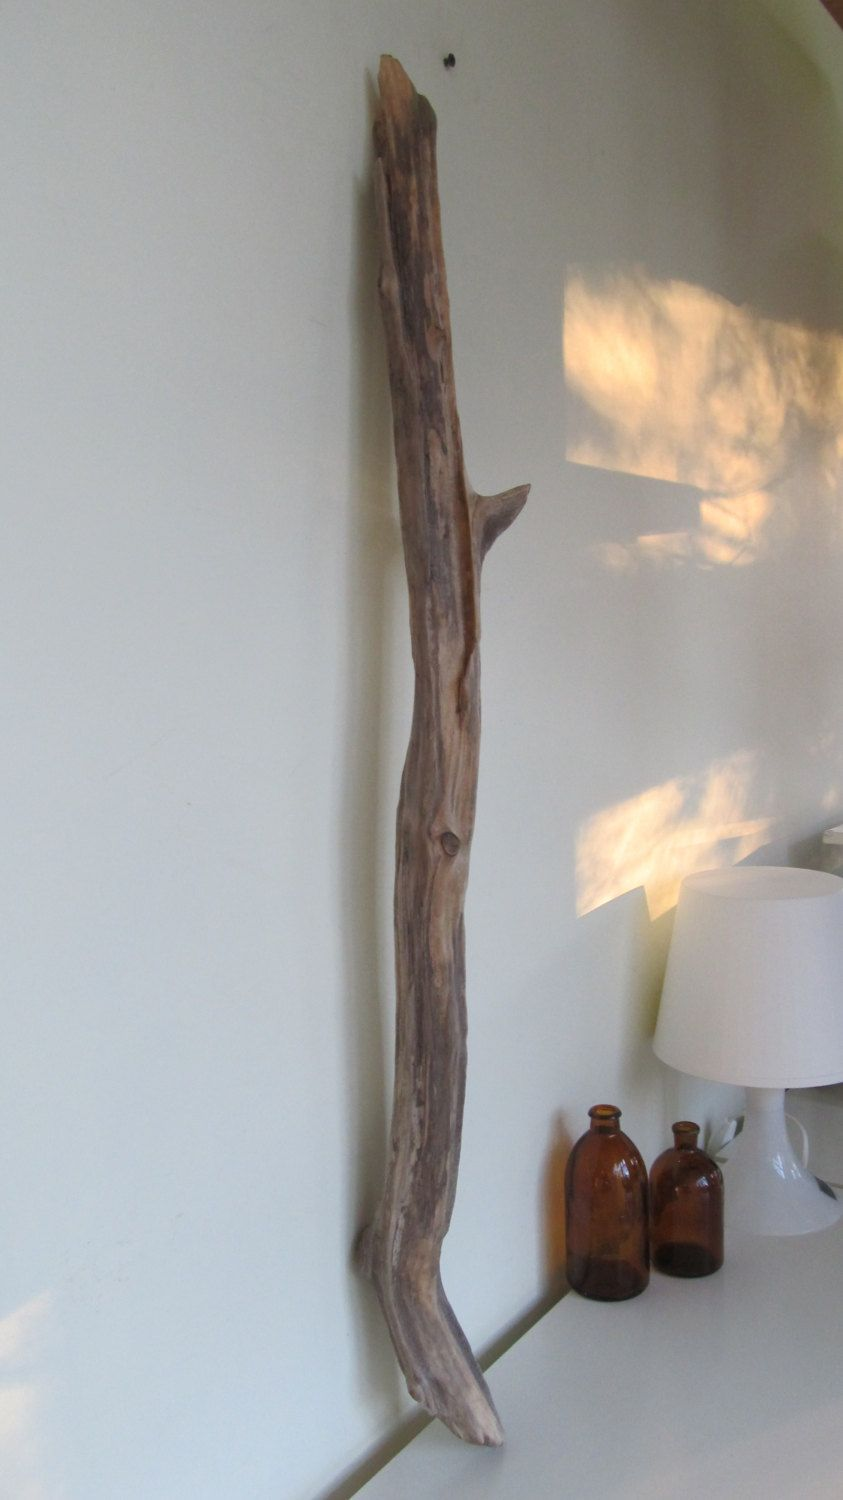 Large lovely driftwood branch for driftwood wall hanging for Driftwood wall